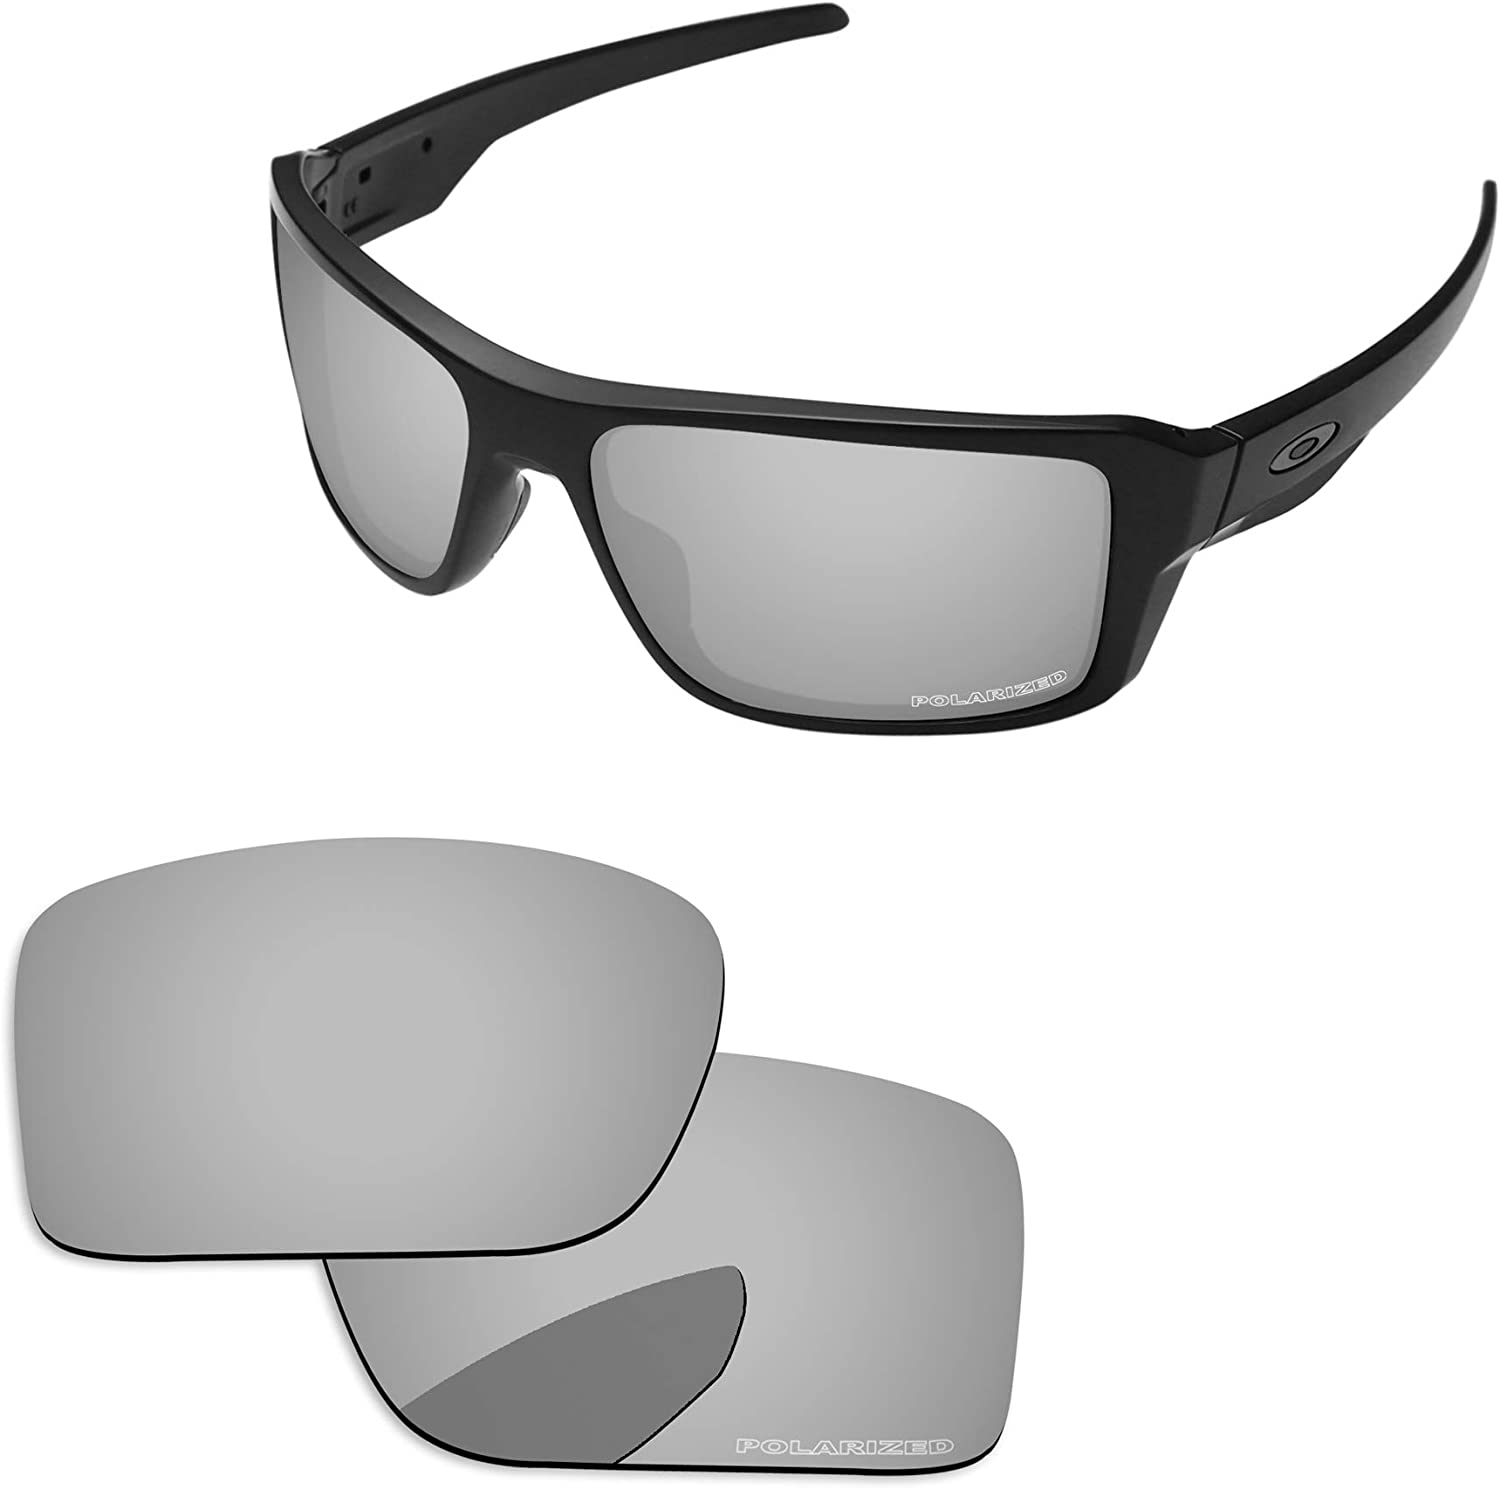 PapaViva Lenses Replacement Max 41% OFF for OO9380 Edge Cheap mail order specialty store Double Oakley